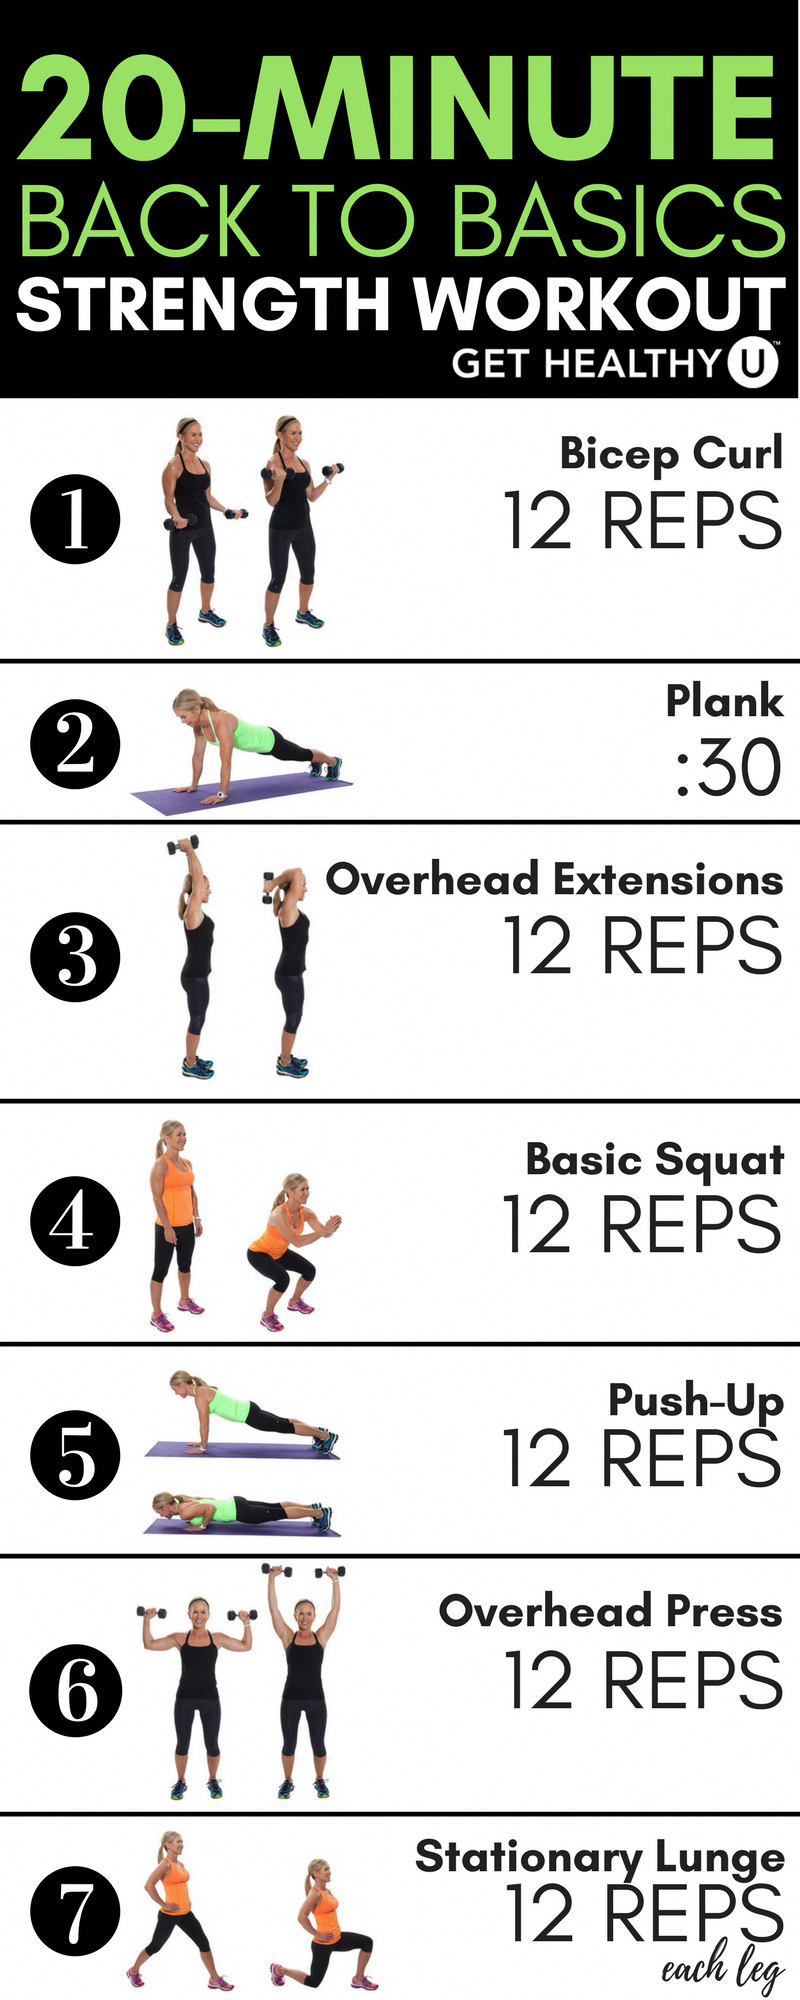 Back To Basics Total-Body Workout - Get Healthy U